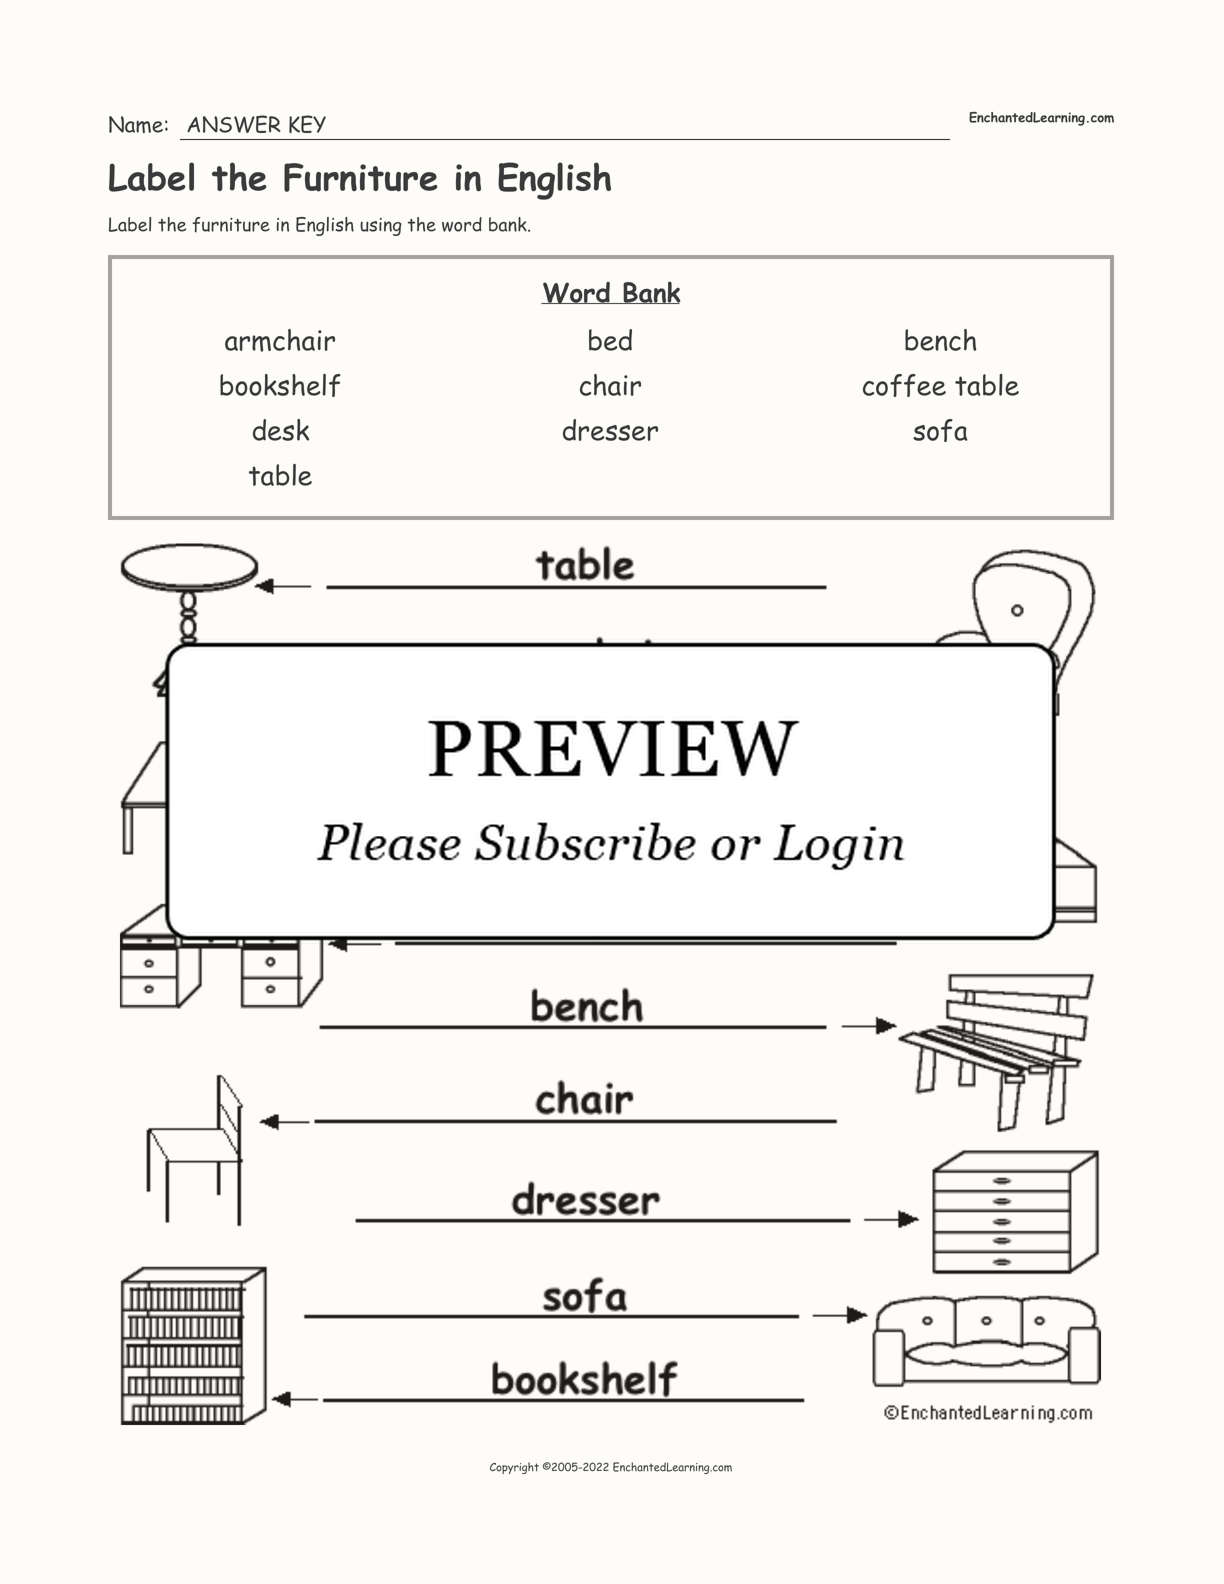 Label the Furniture in English interactive worksheet page 2